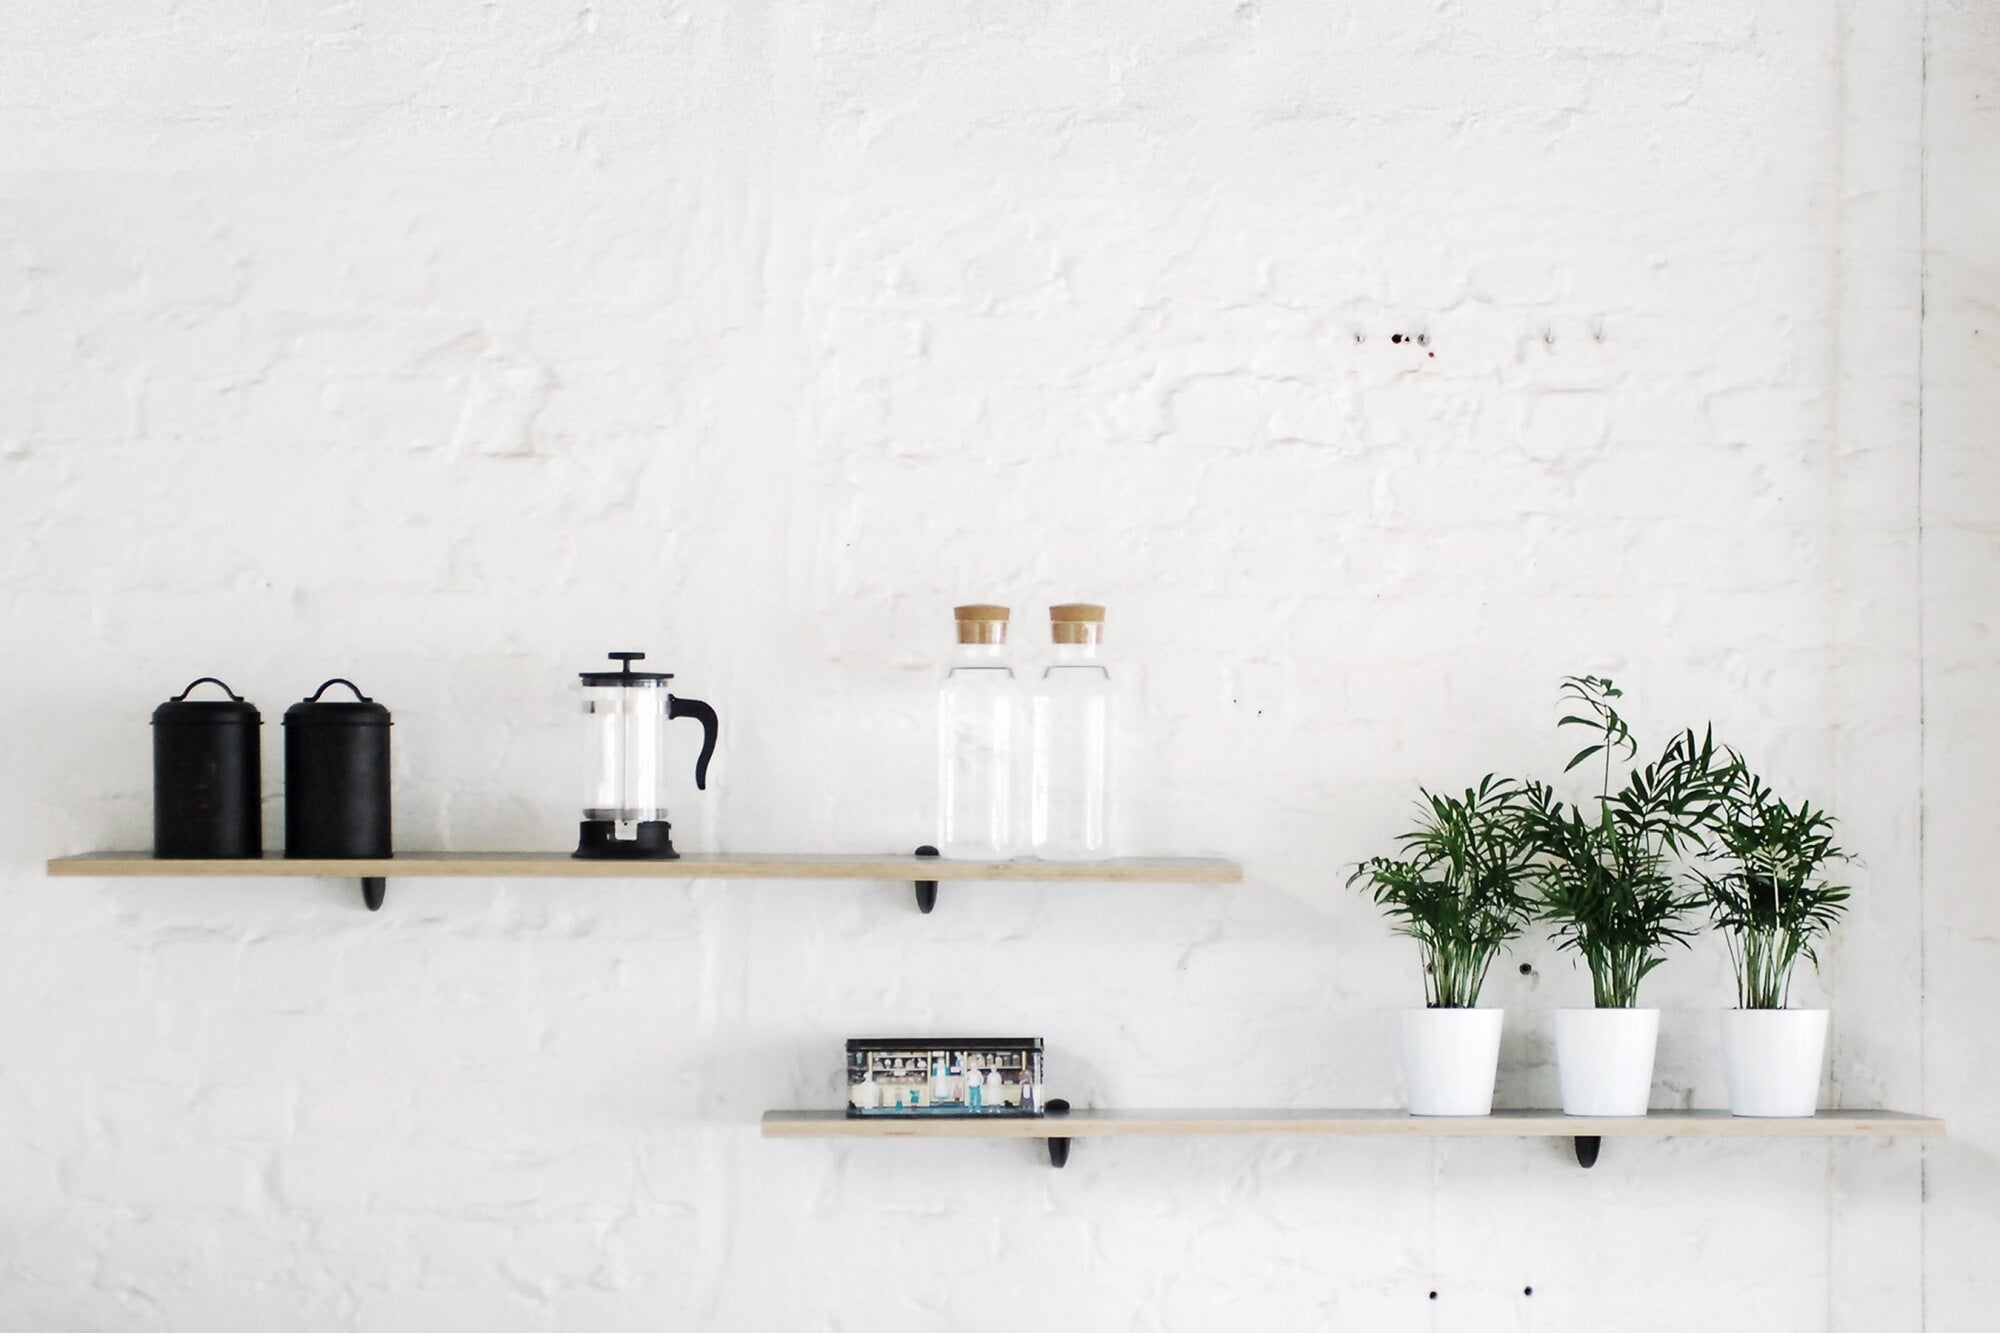 Thin wood wall shelving with white and black decor and plants.